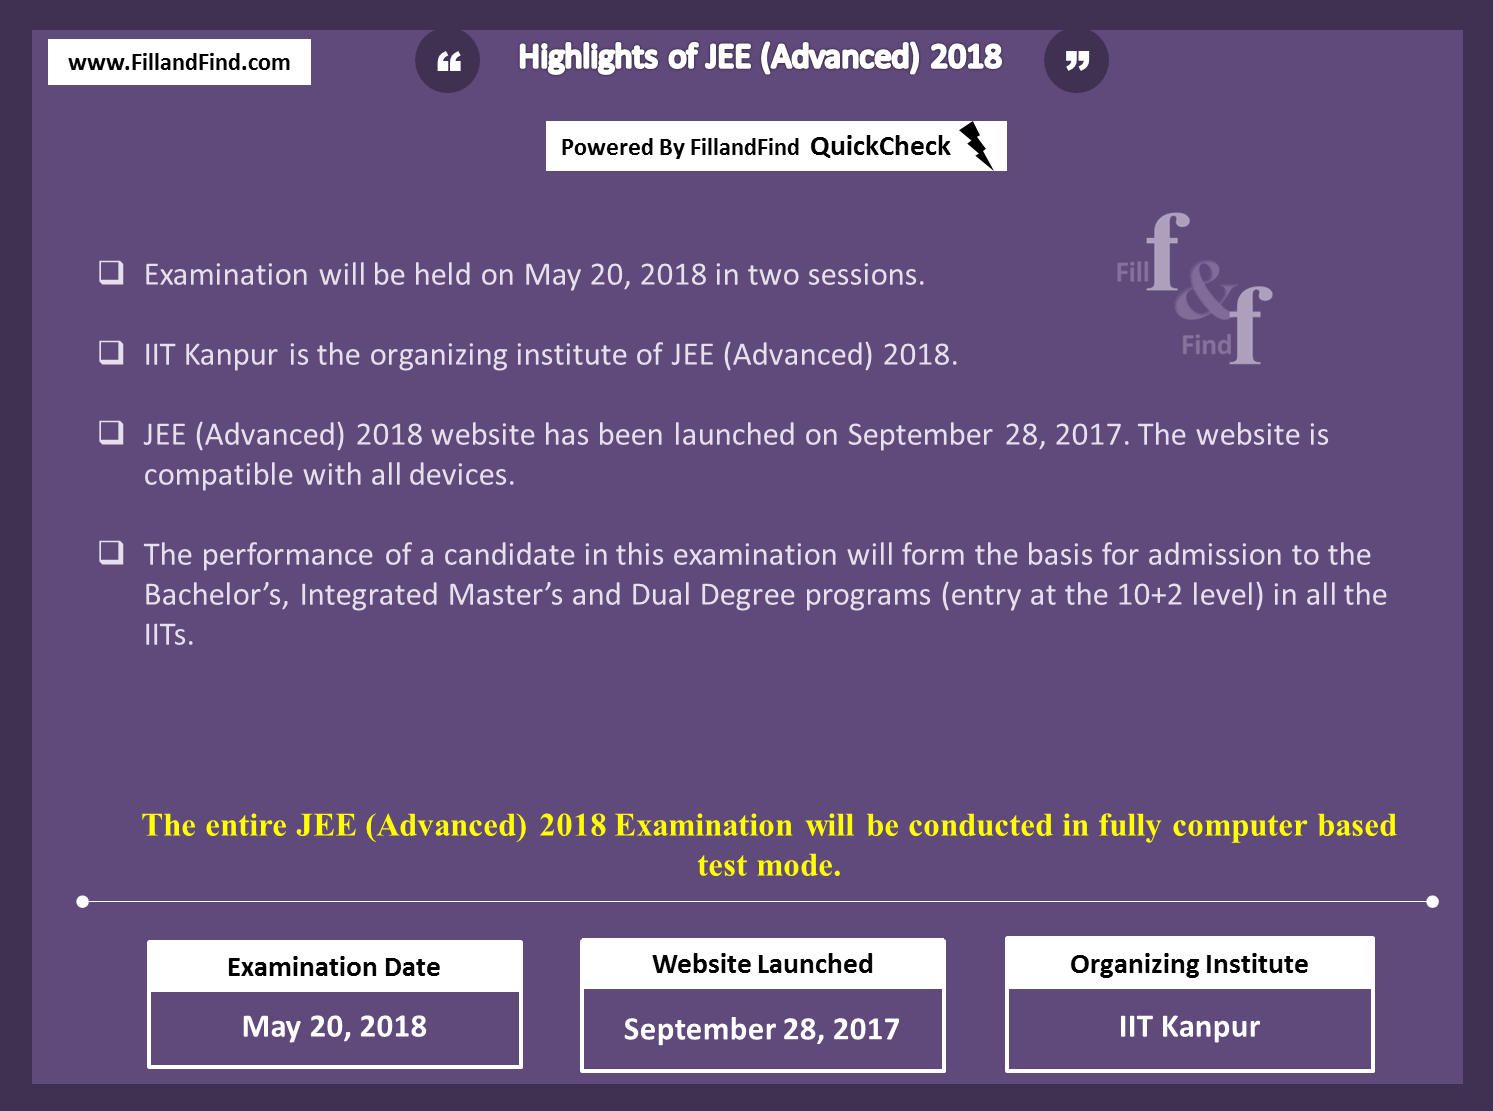 JEE Advanced 2018: Registration, Application Form, Dates, Syllabus